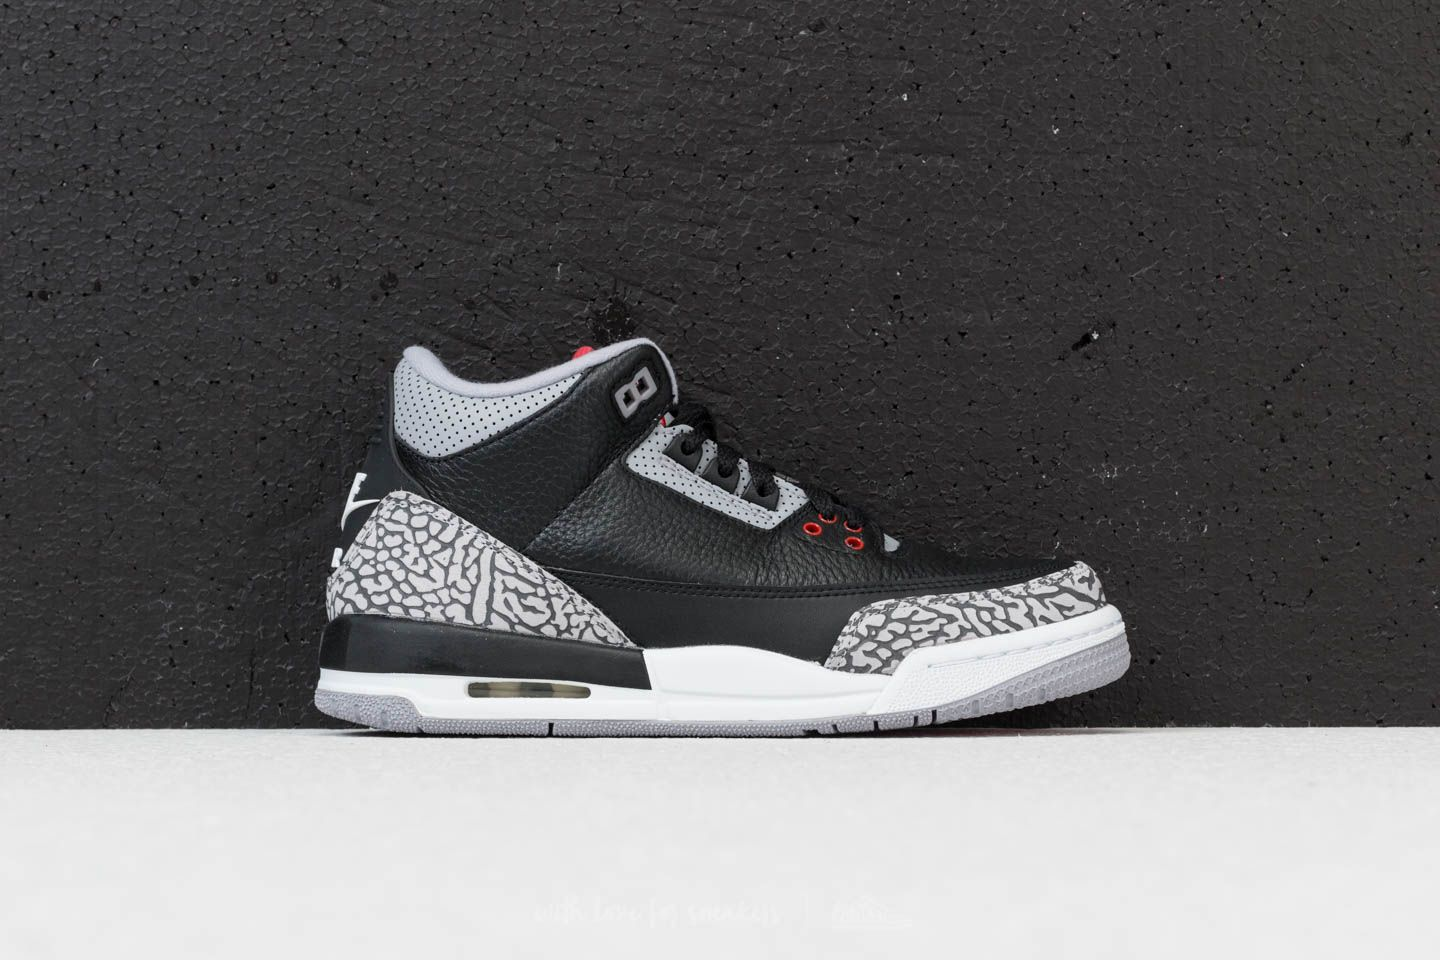 2698d75588c191 Air Jordan 3 Retro OG BG Black  Fire Red-Cement Grey at a great